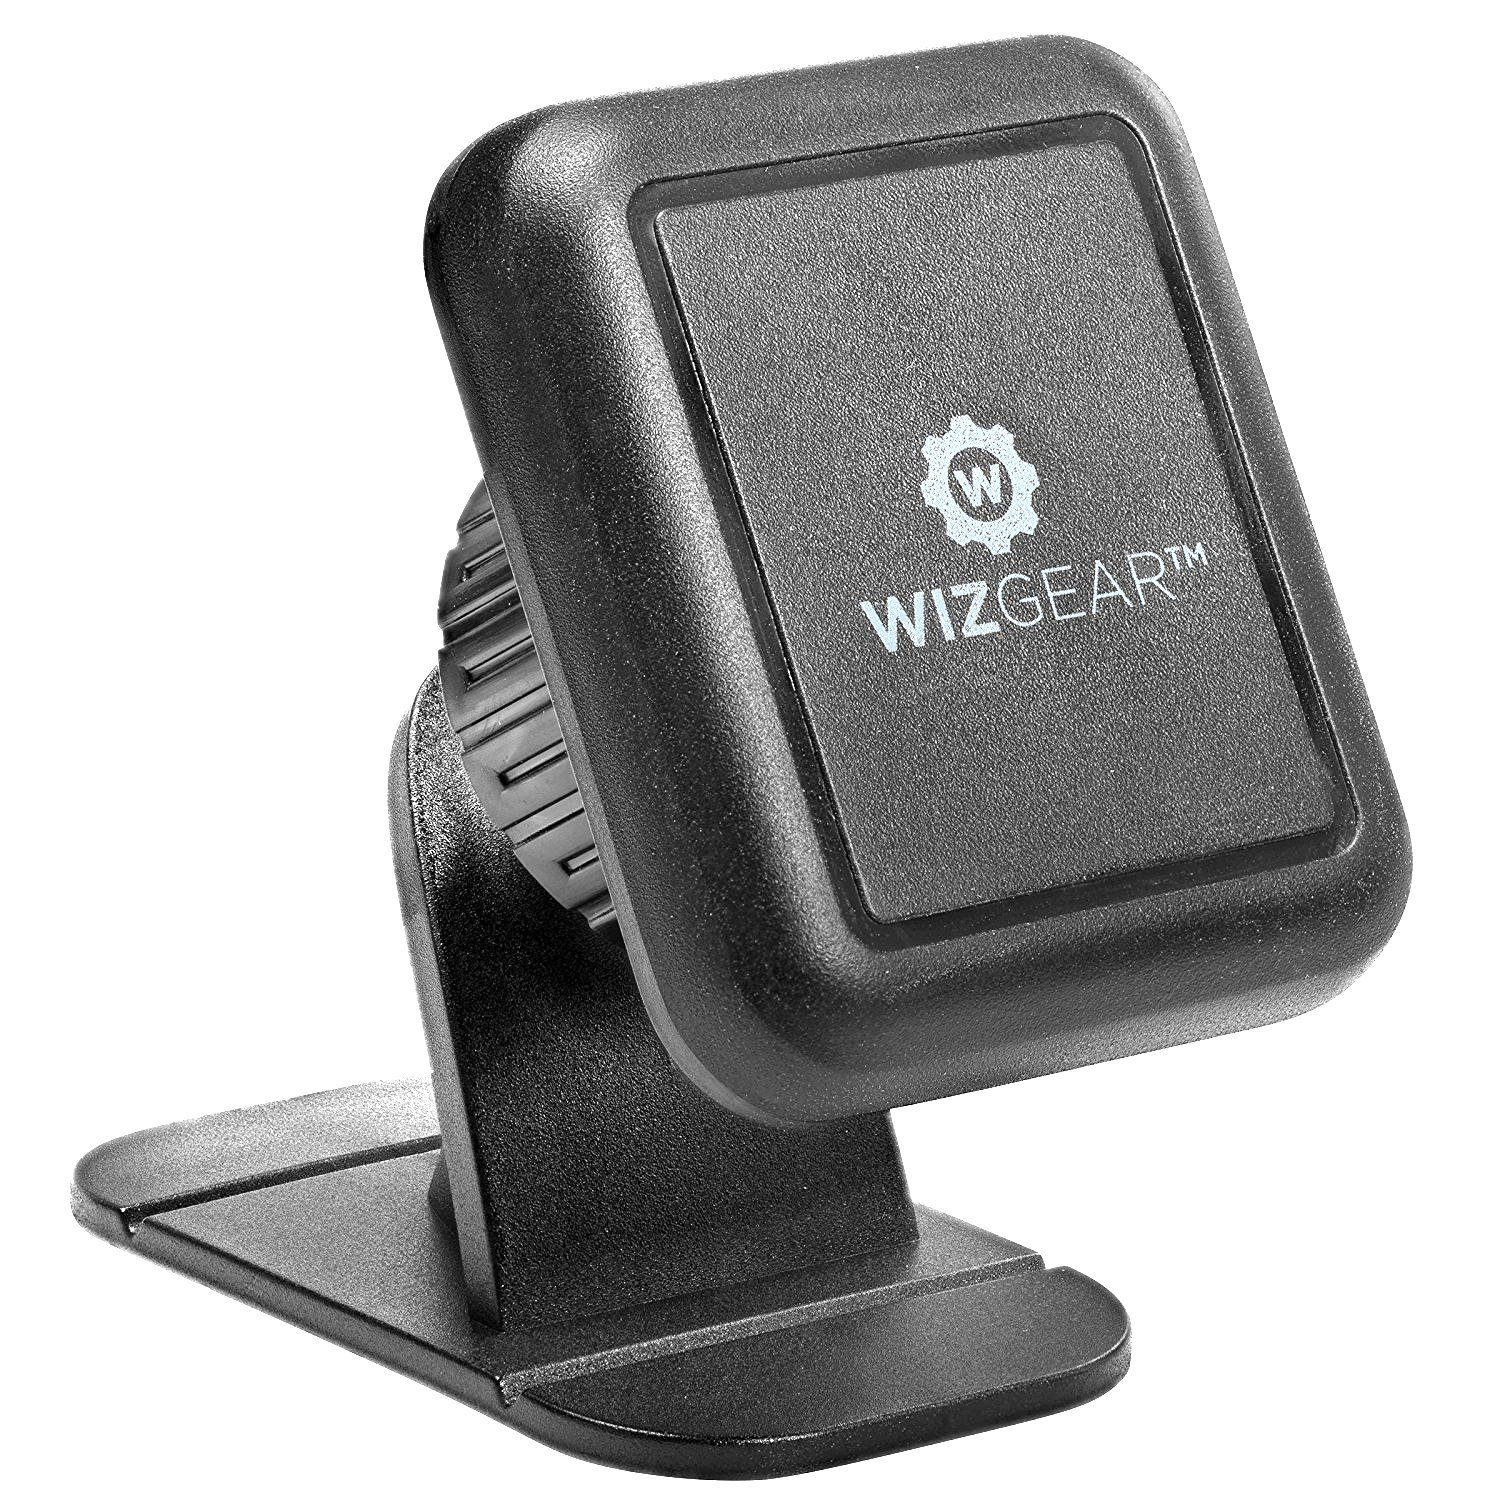 WizGear Magnetic Phone Mount, Universal Stick On Dashboard Magnetic Car Mount Holder, for Cell Phones with Fast Swift-snap Technology